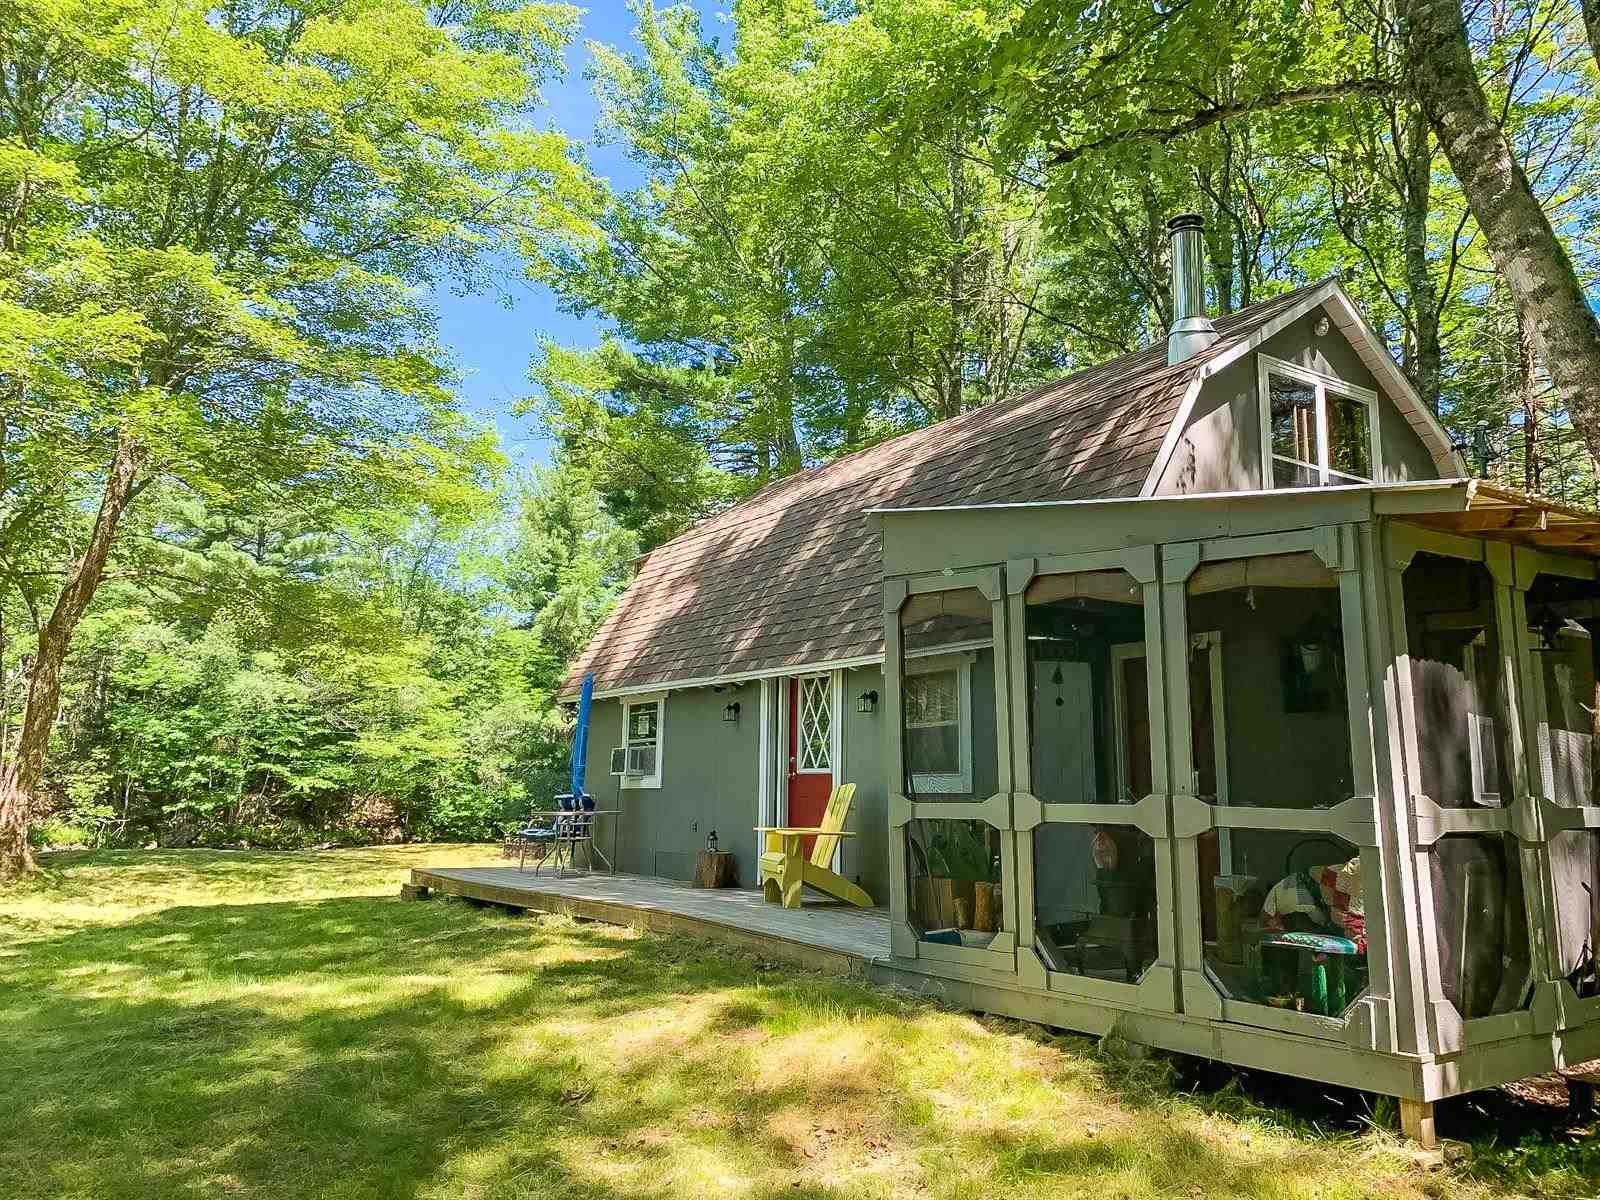 Main Photo: 66 Basil Whynot Road in Upper Northfield: 405-Lunenburg County Residential for sale (South Shore)  : MLS®# 202118031